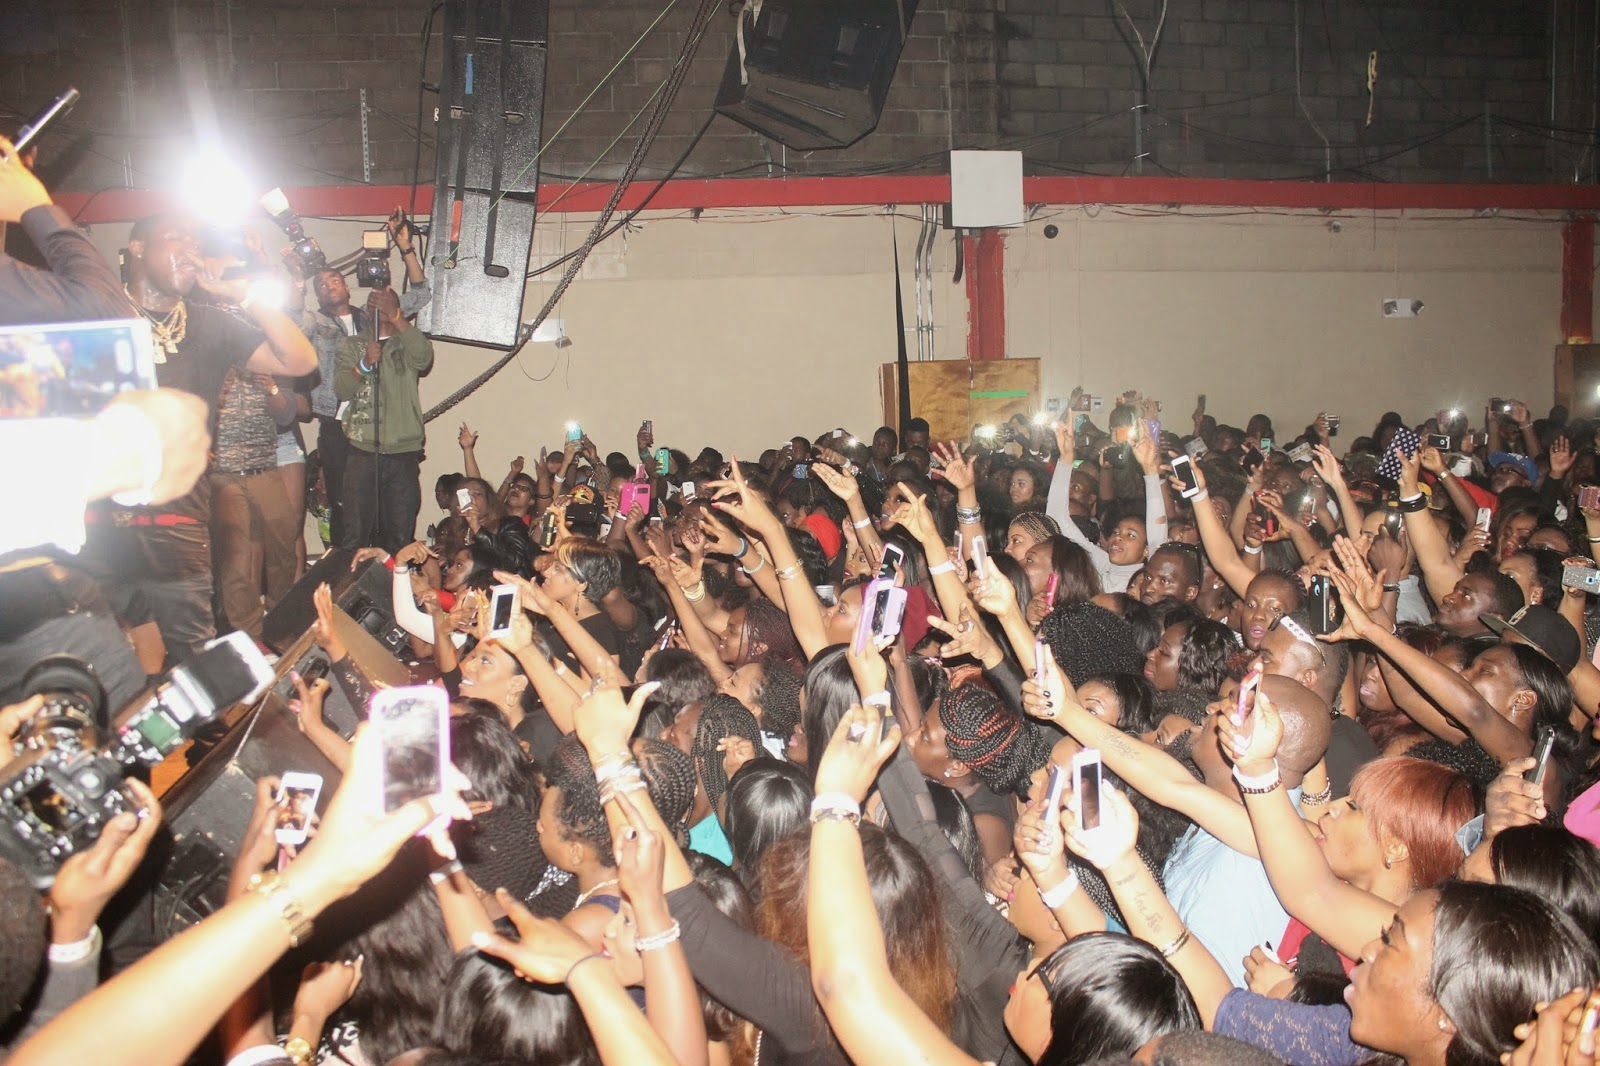 Davido's Concert Wack as Hell: Everything Gone Wrong